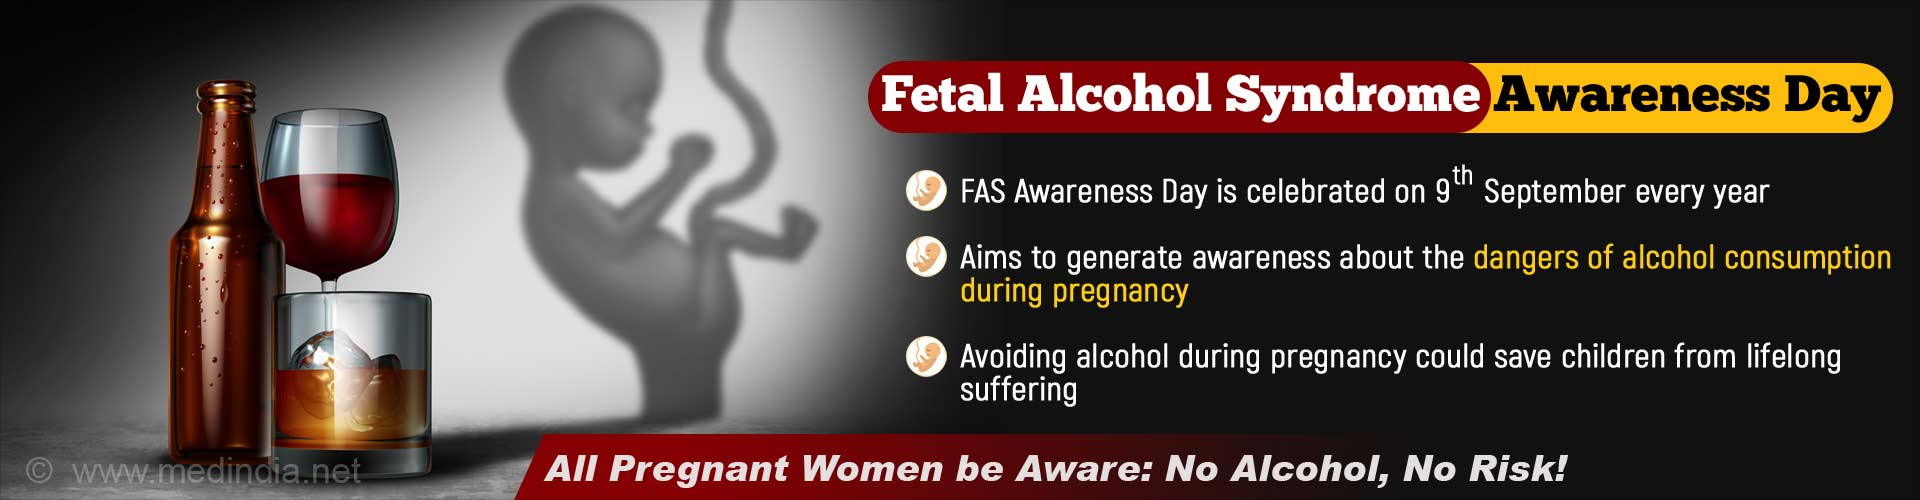 Fetal Alcohol Syndrome Awareness Day: Time to Think, Reflect, and Take Action